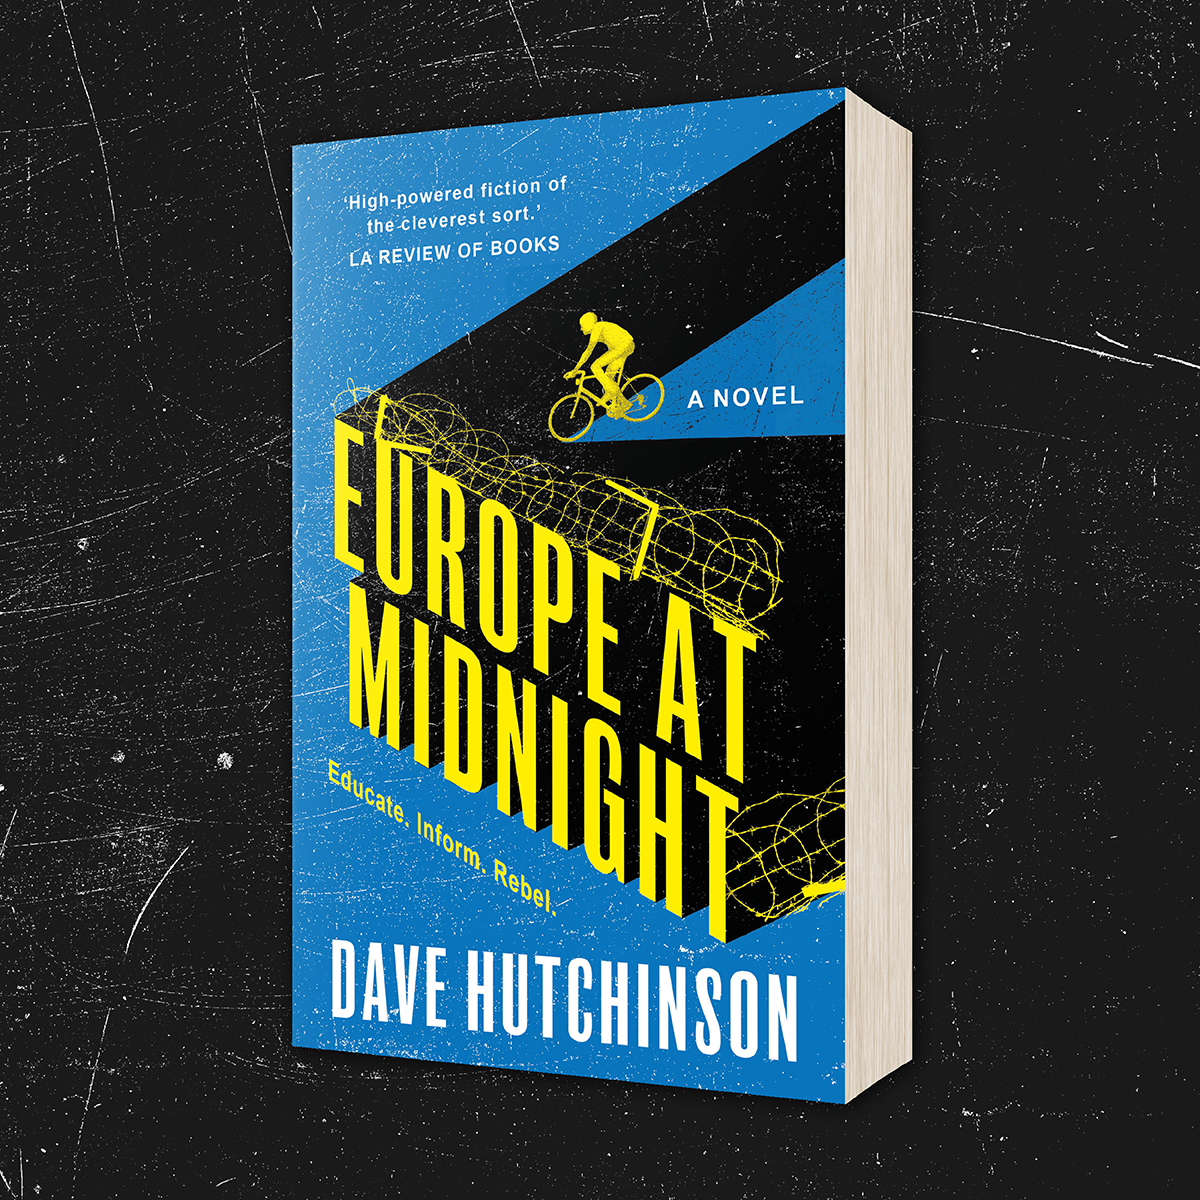 OUT NOW: Europe at Midnight by Dave Hutchinson (US Reissue)